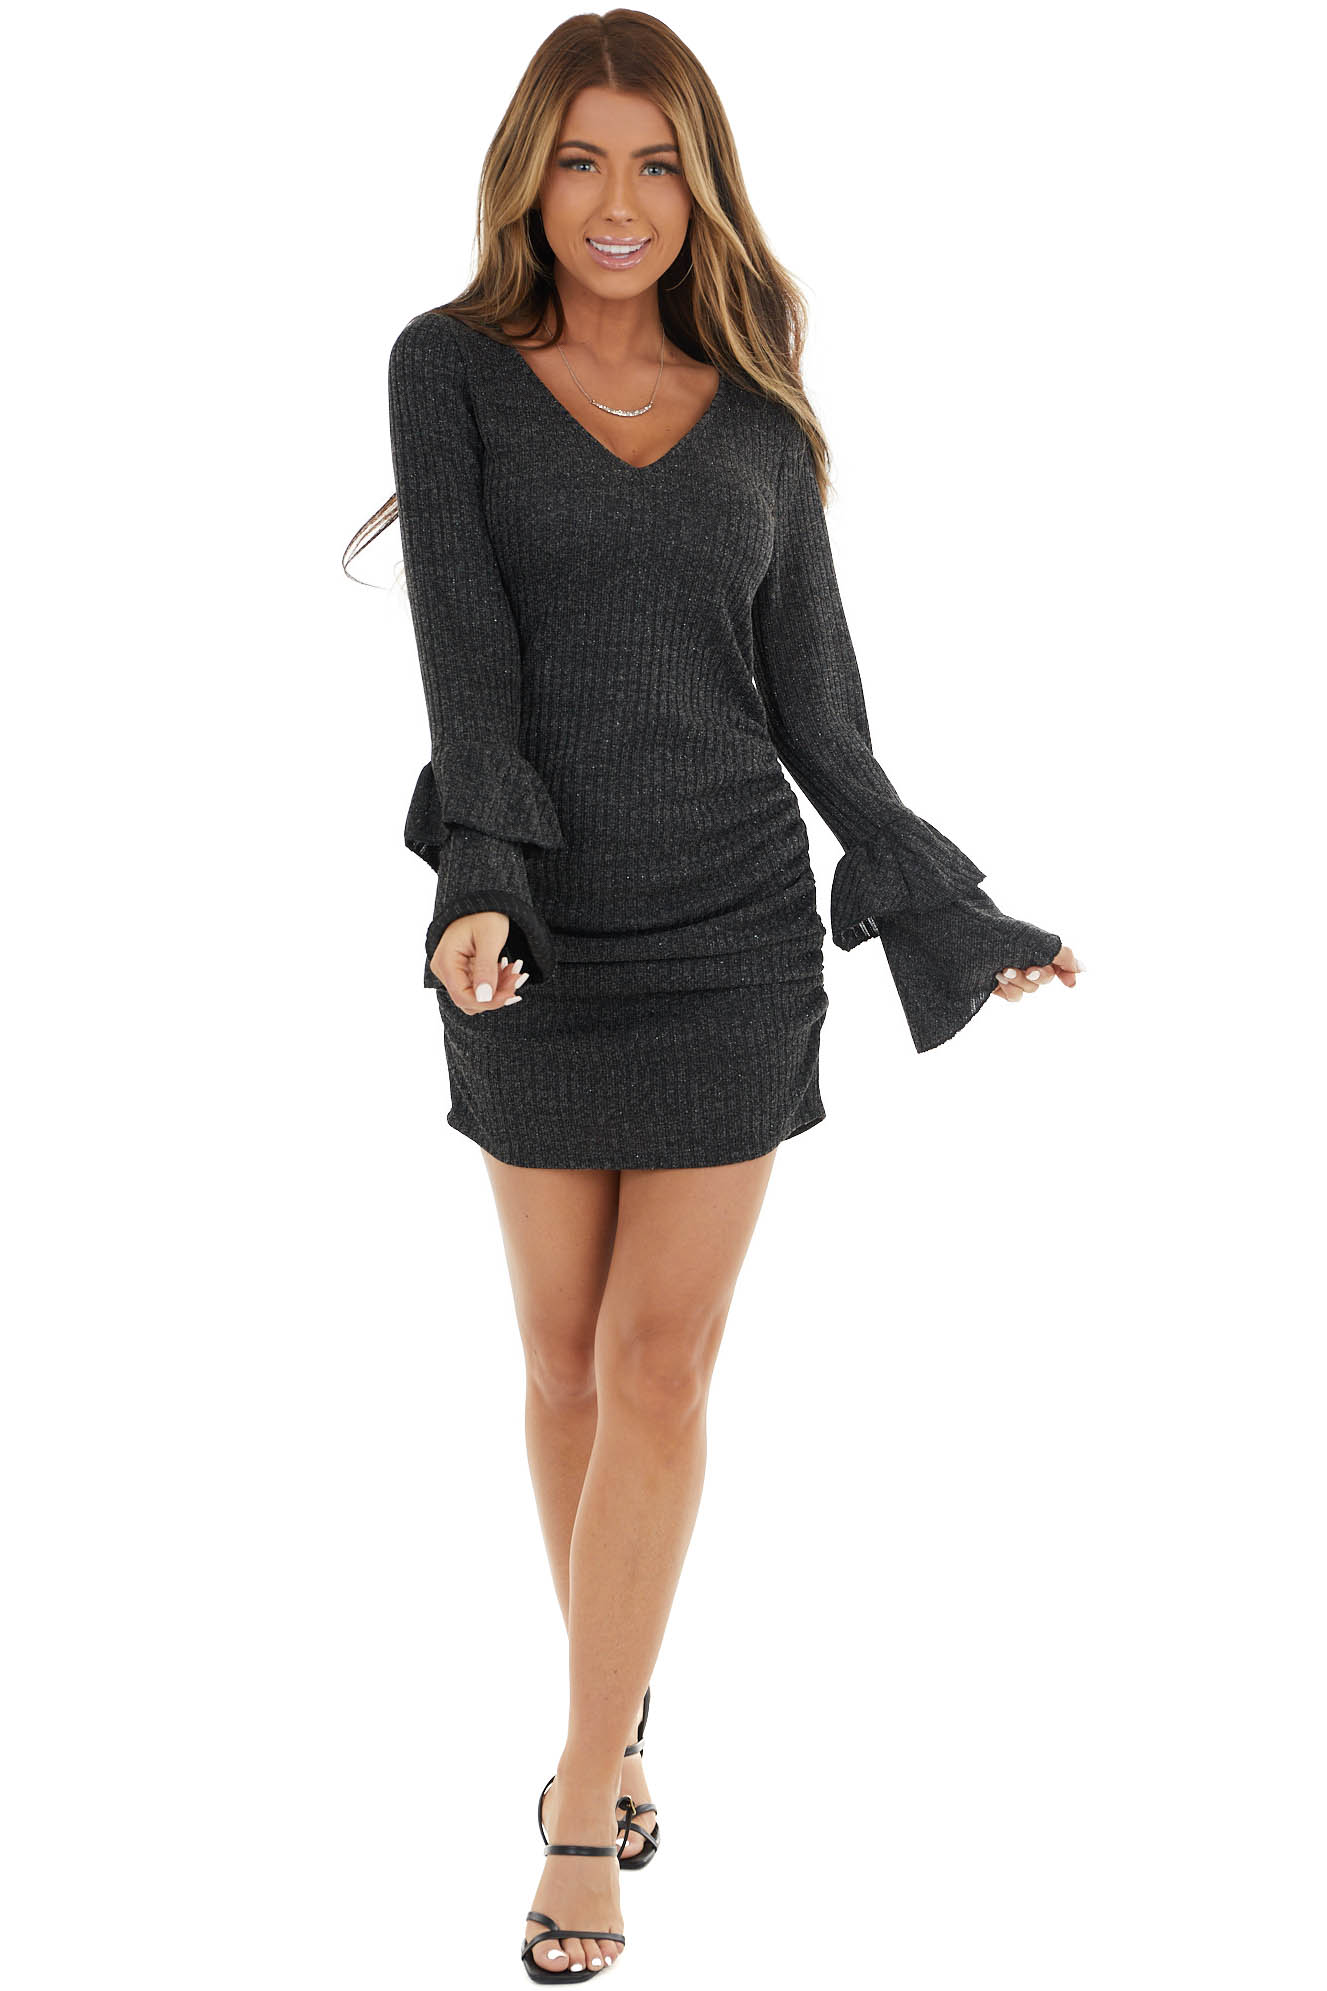 Black Long Sleeve Knit Dress with Sparkle Thread Detail